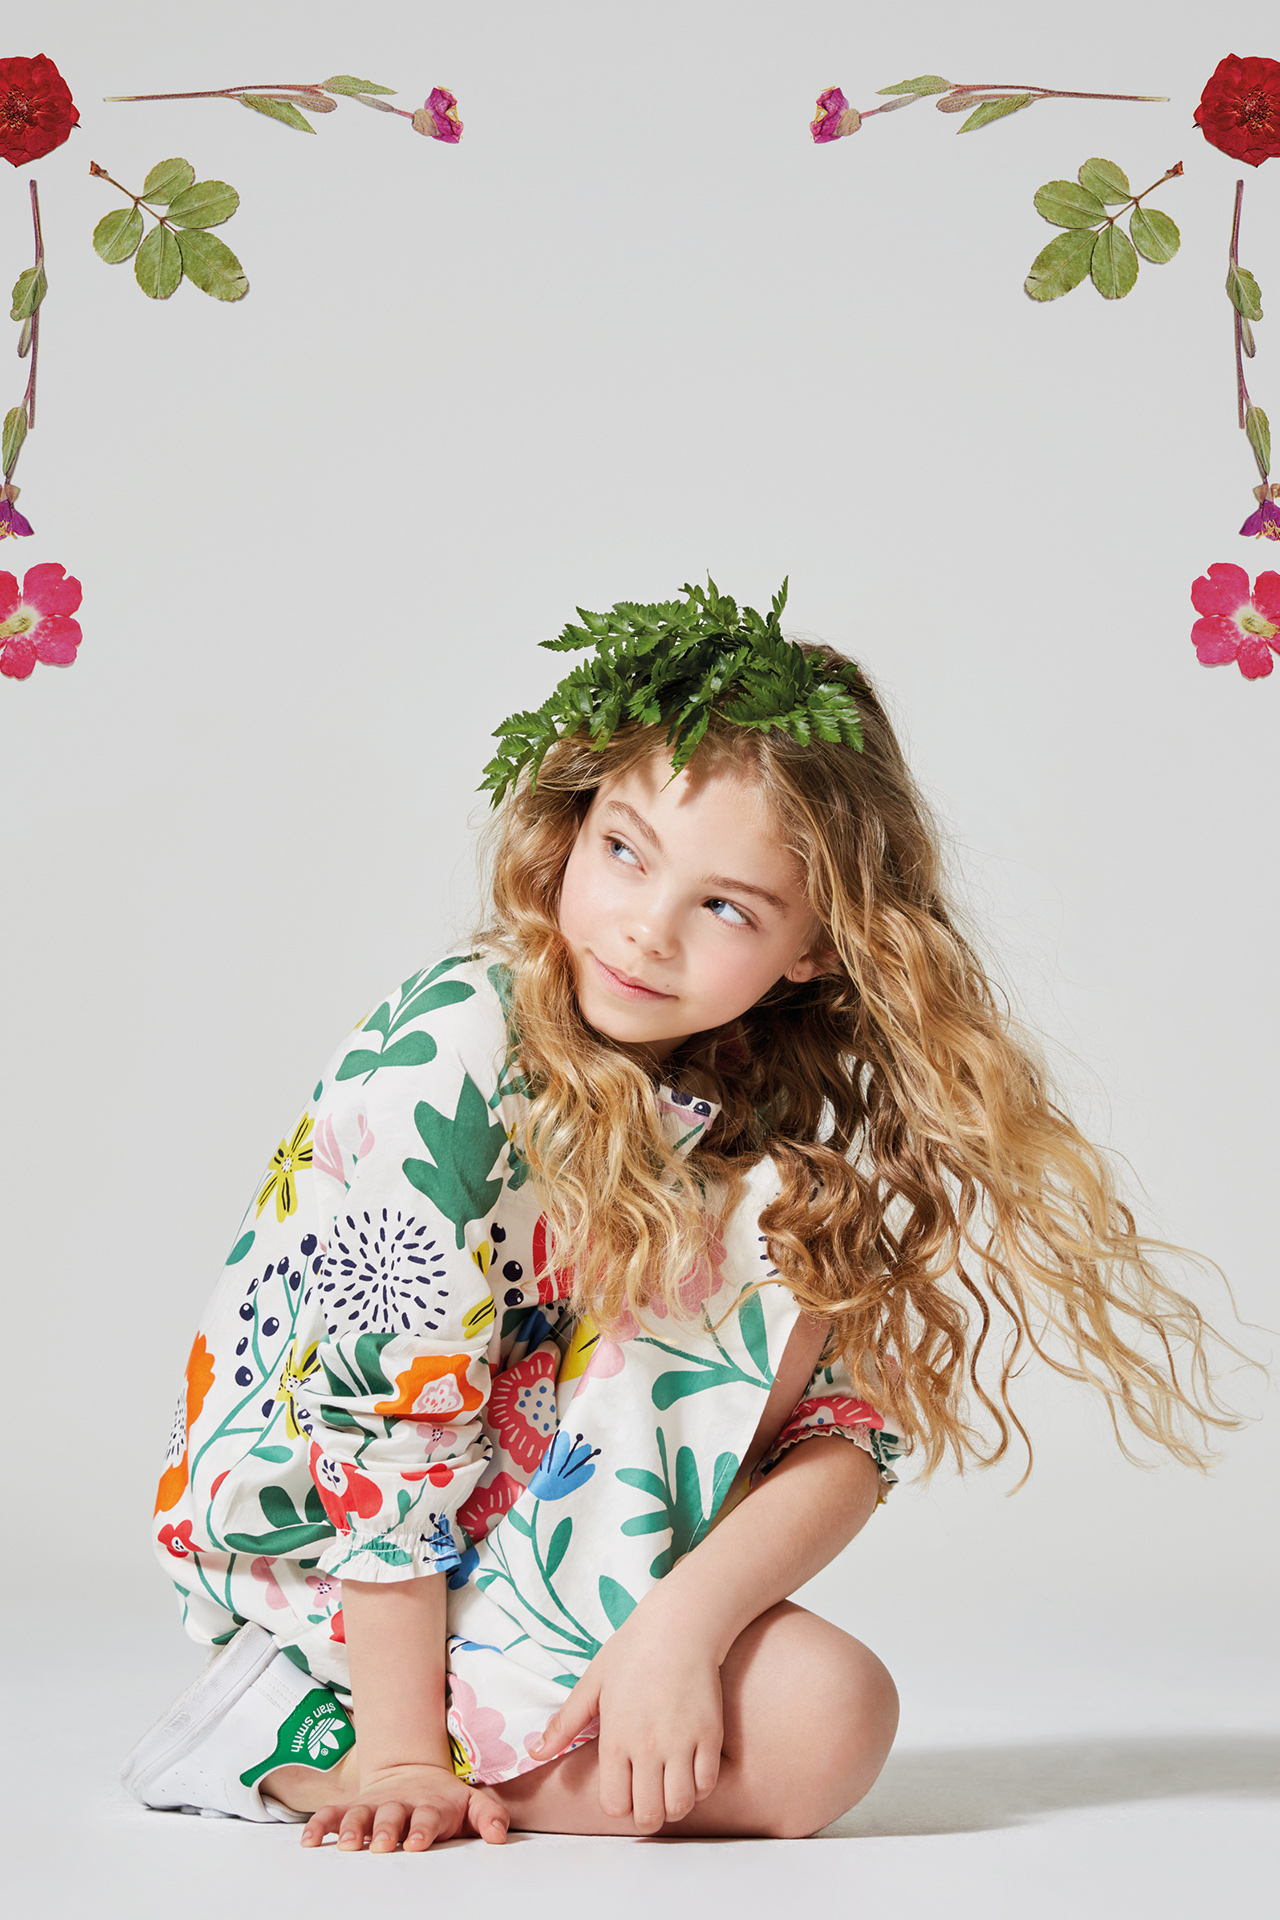 Floral kids fashion girl 5 Emma Tunbridge